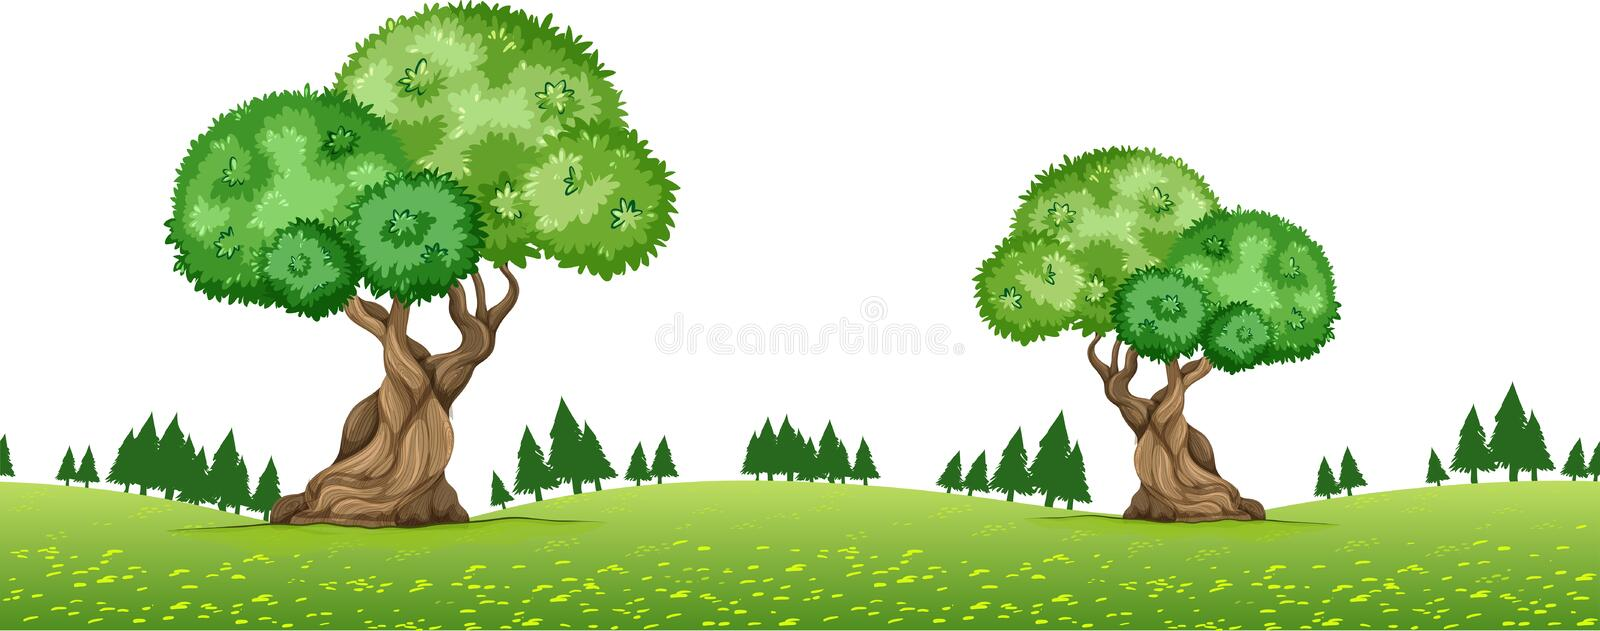 Nature scene with trees in the park vector illustration